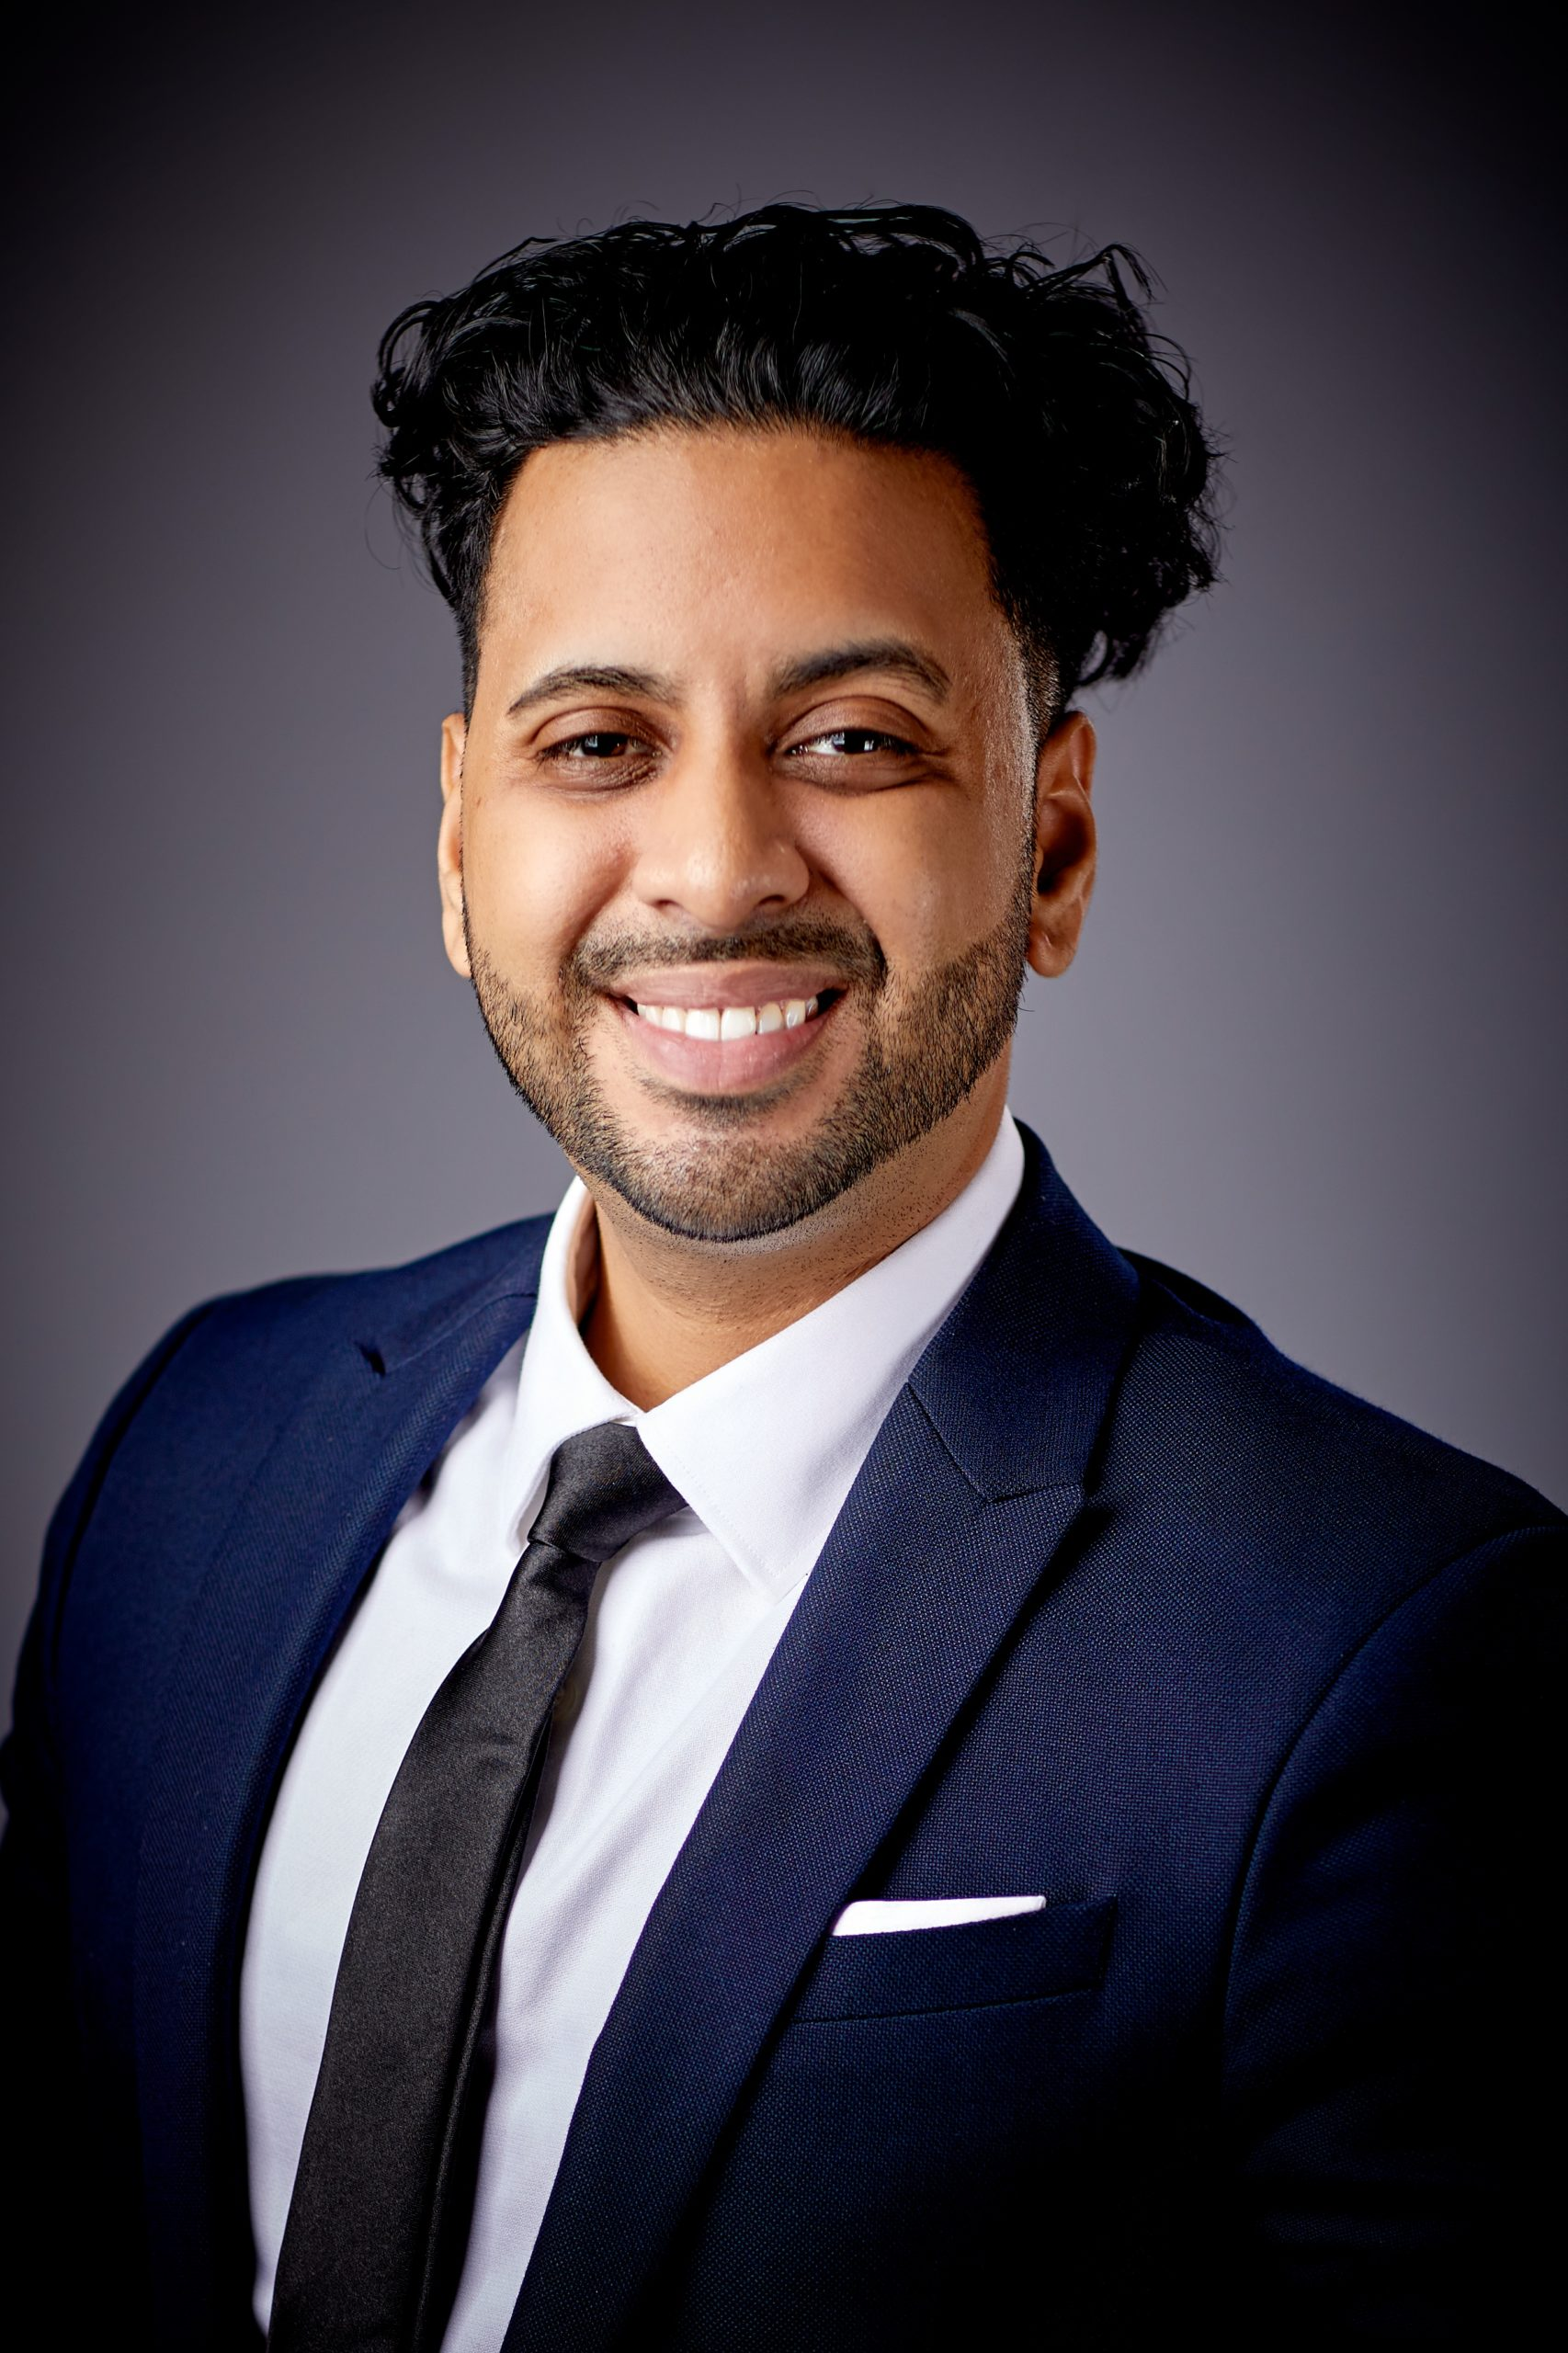 Paul Persaud